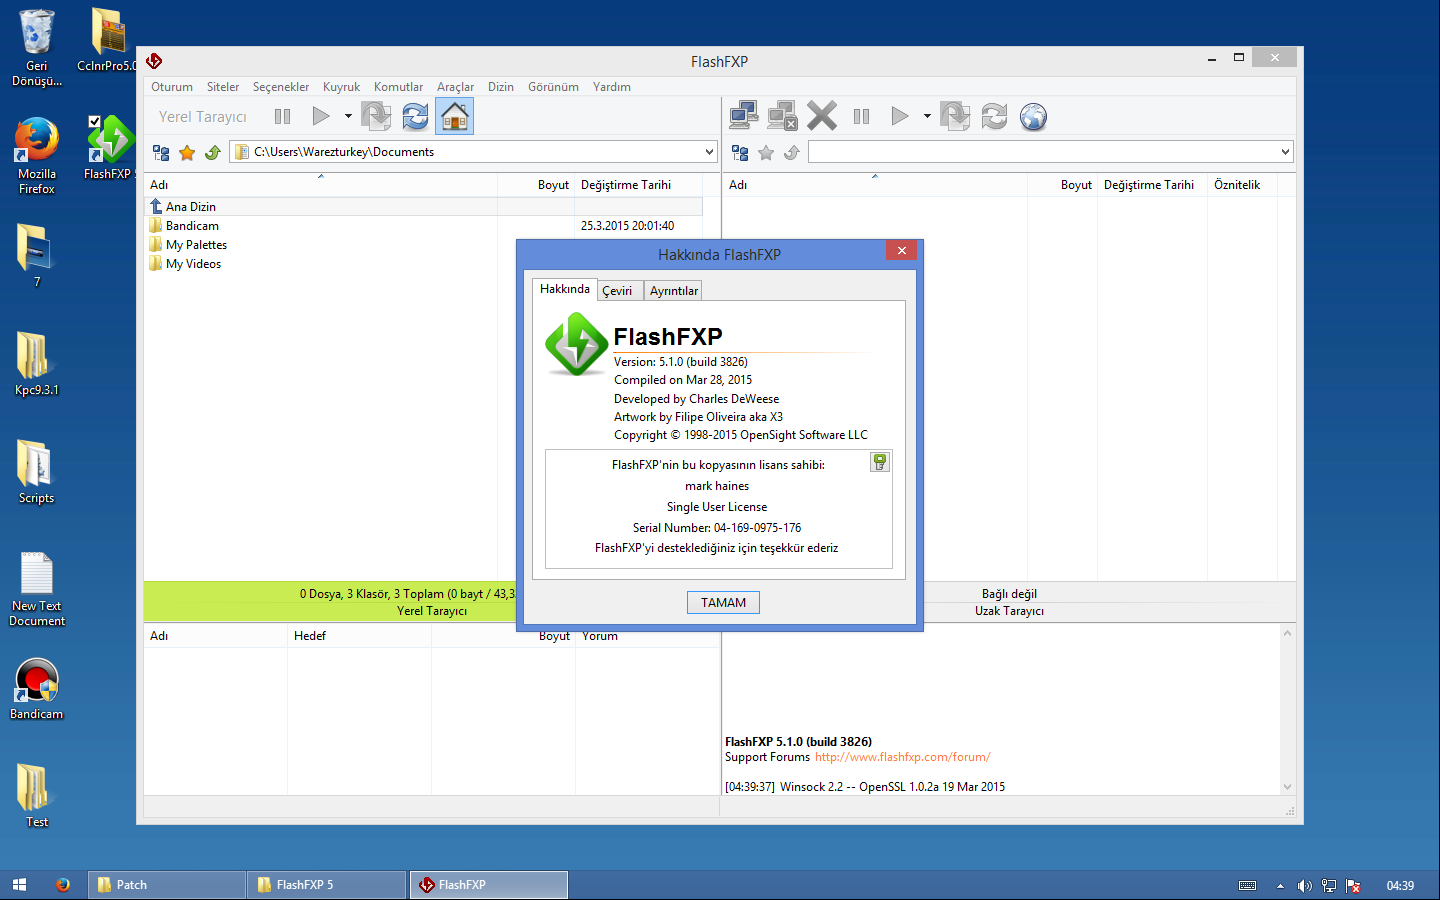 FlashFXP 5.4.0 Build 3947 Türkçe + Portable